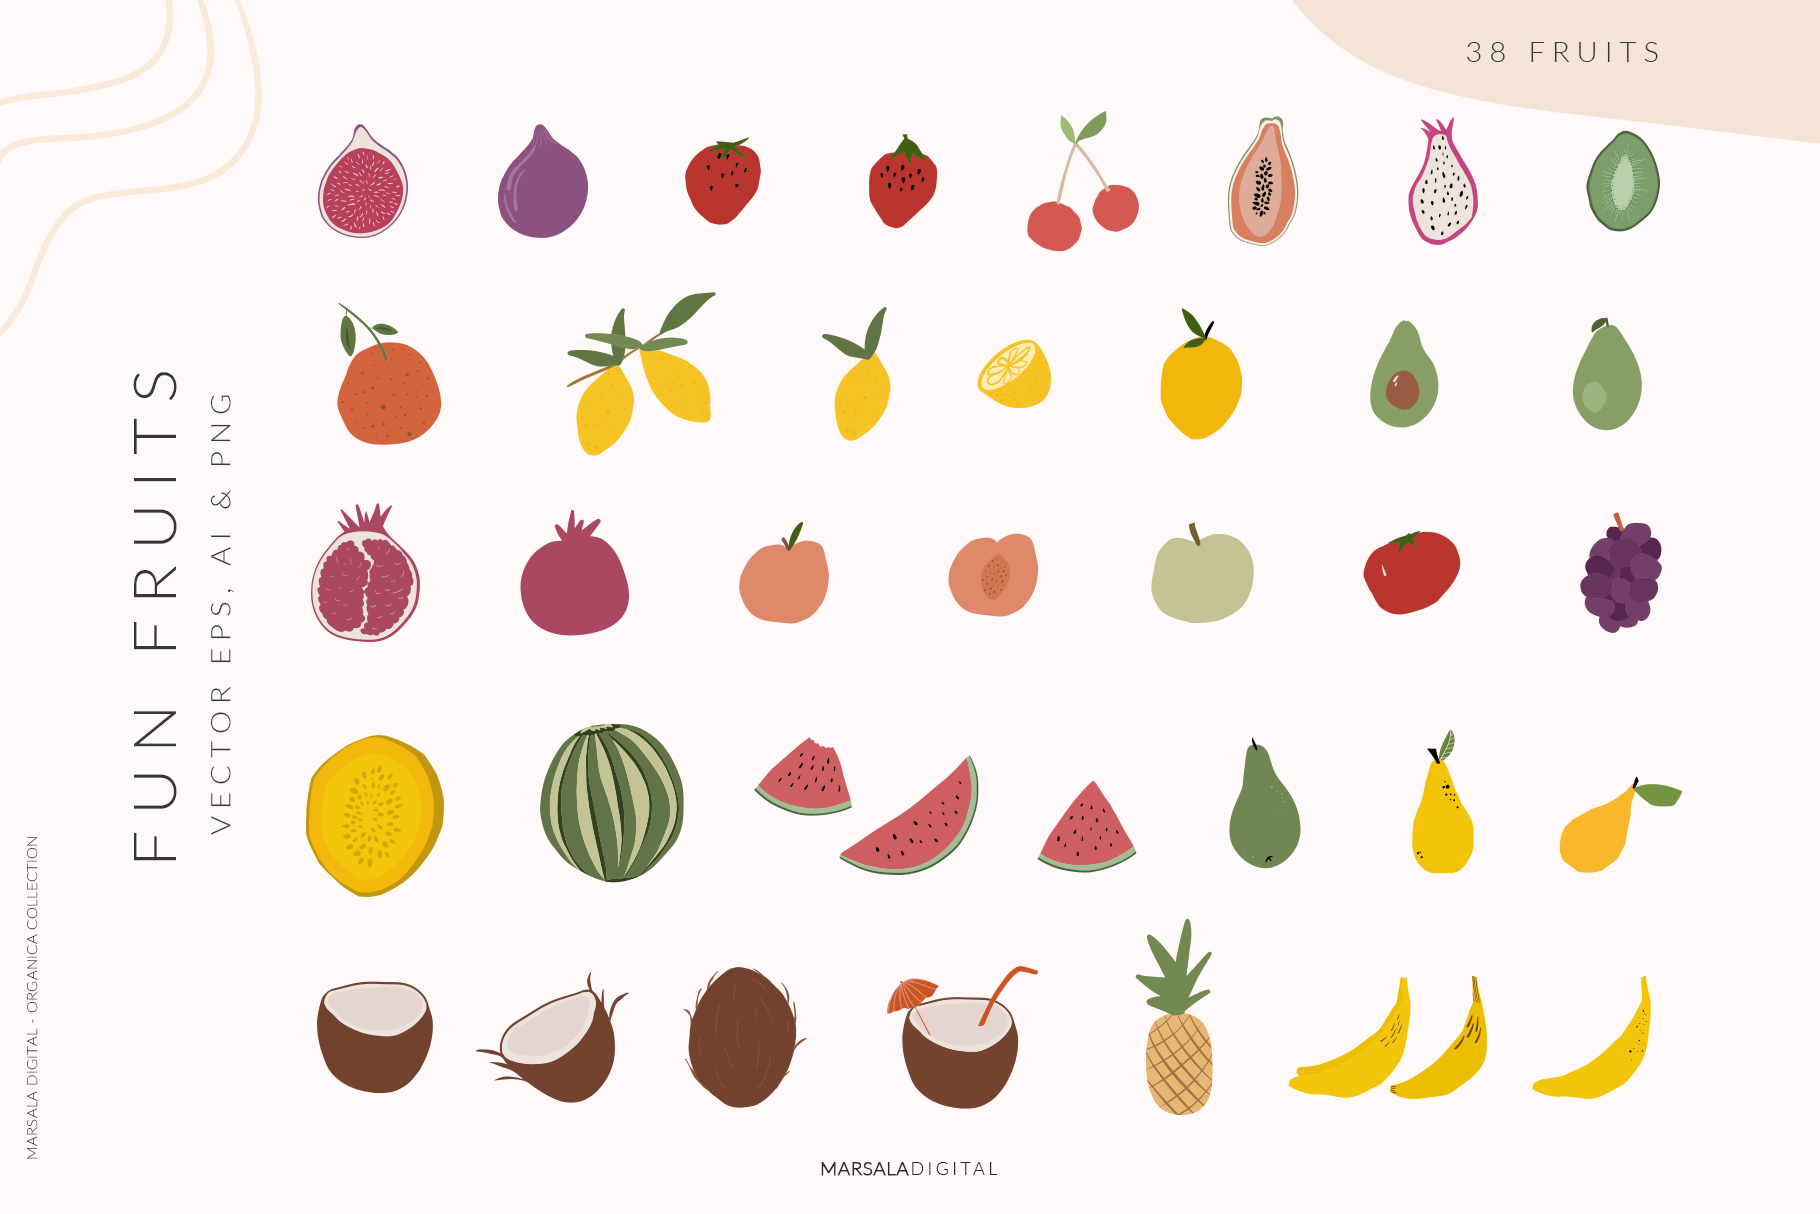 Abstract Shapes & Fun Fruits Patterns and Graphics example image 3